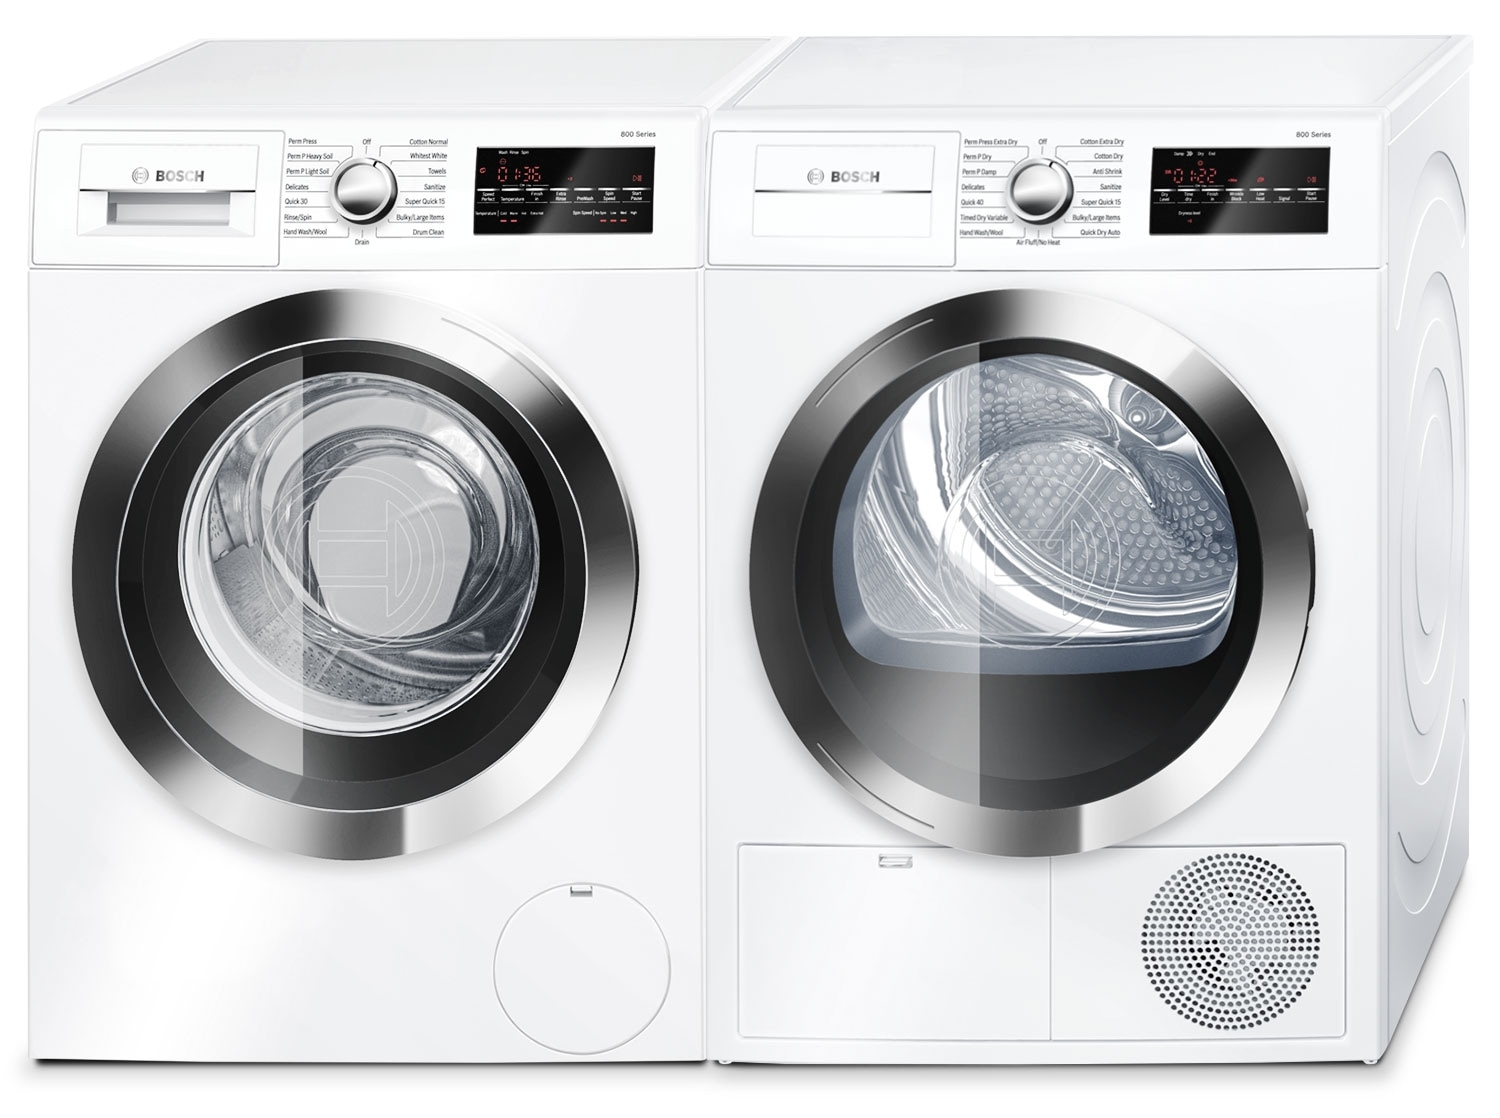 Washers and Dryers - Bosch 800 Series 2.2 Cu. Ft. Compact Washer and 4.0 Cu. Ft. Condensation Dryer - White